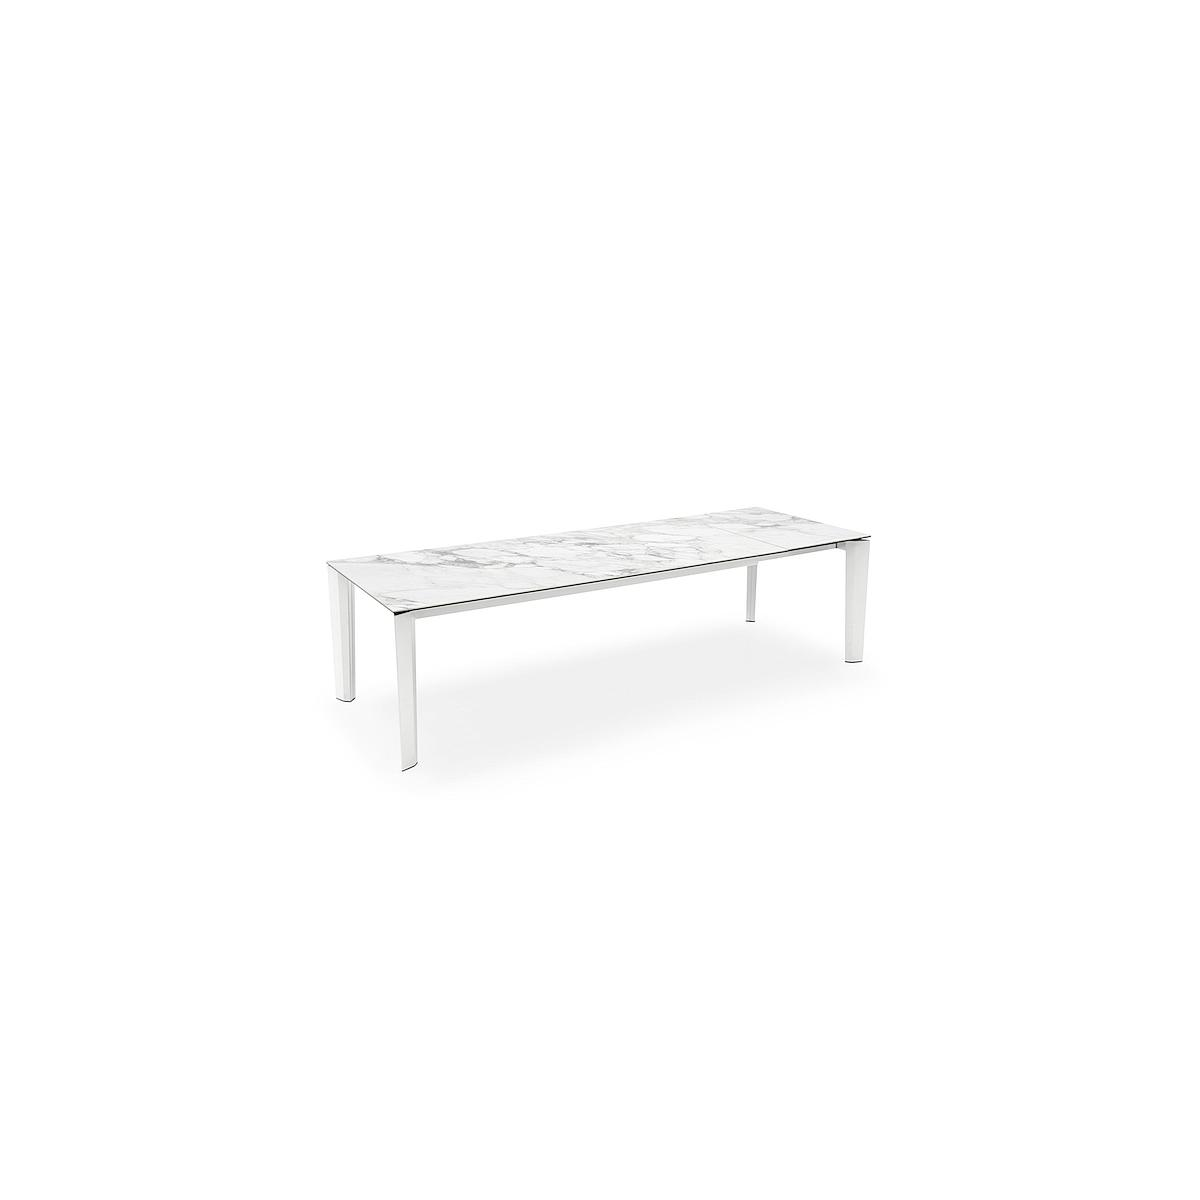 Table rectangulaire extensible DELTA Calligaris céramique-verre Marbre blanc